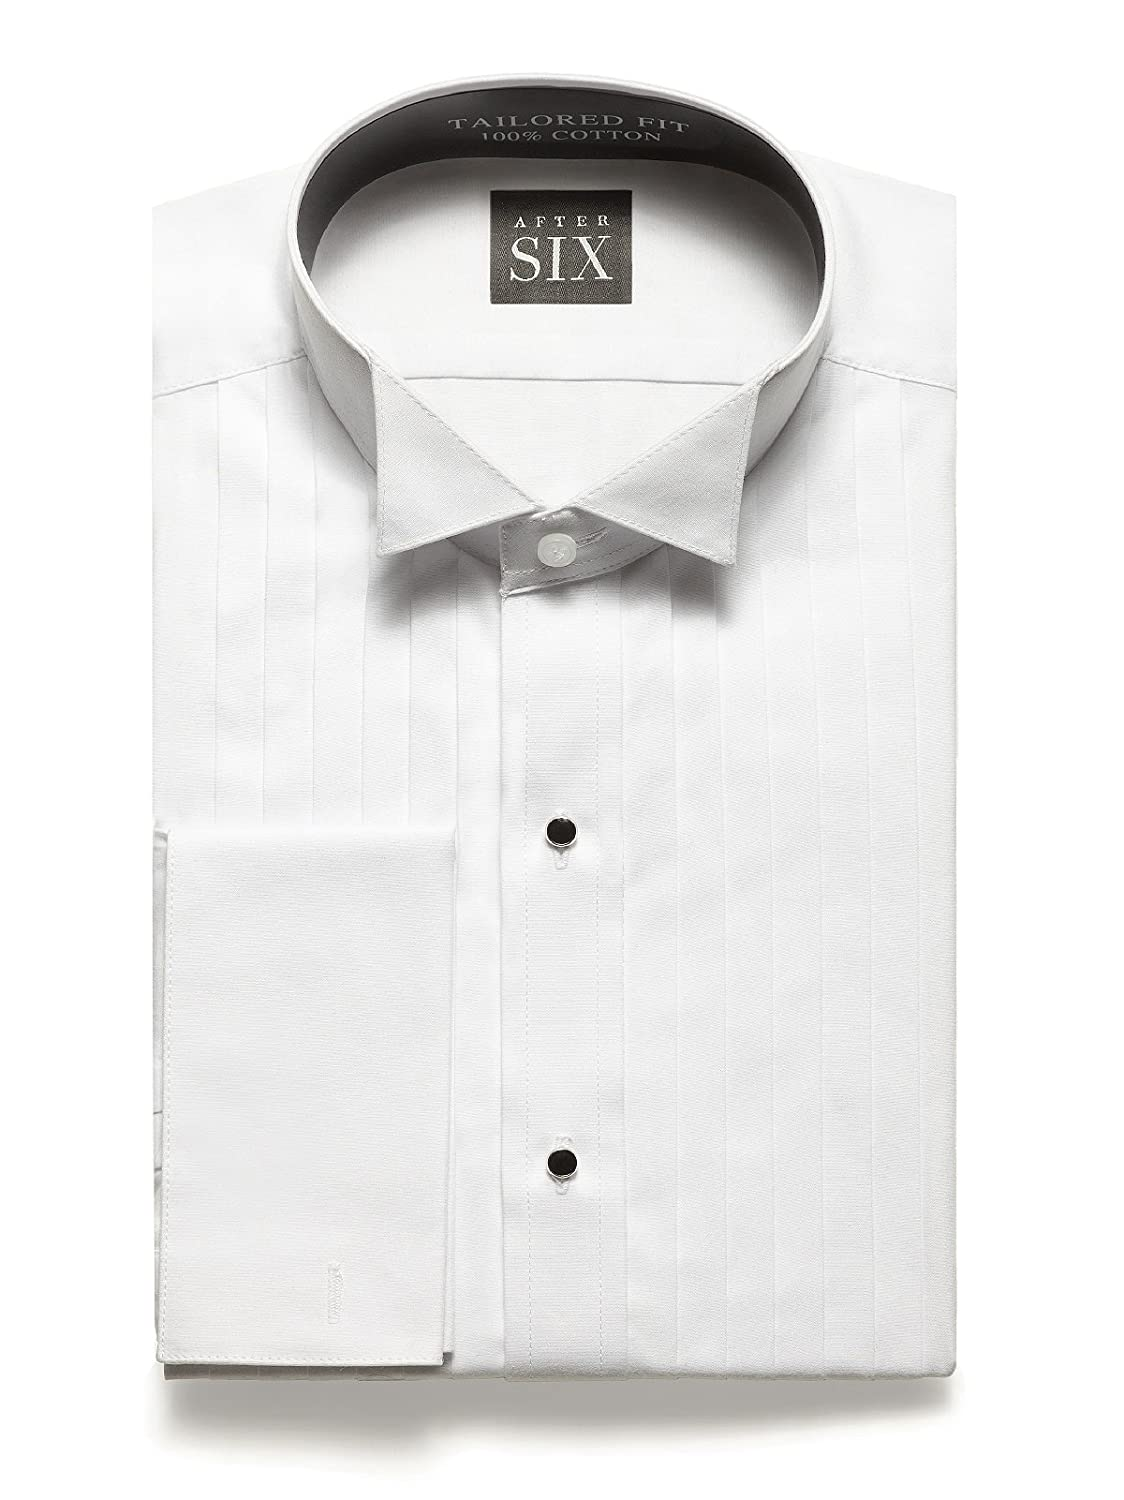 Graham Slim Fit Formal Wing Collar Tuxedo Shirt By After Six From